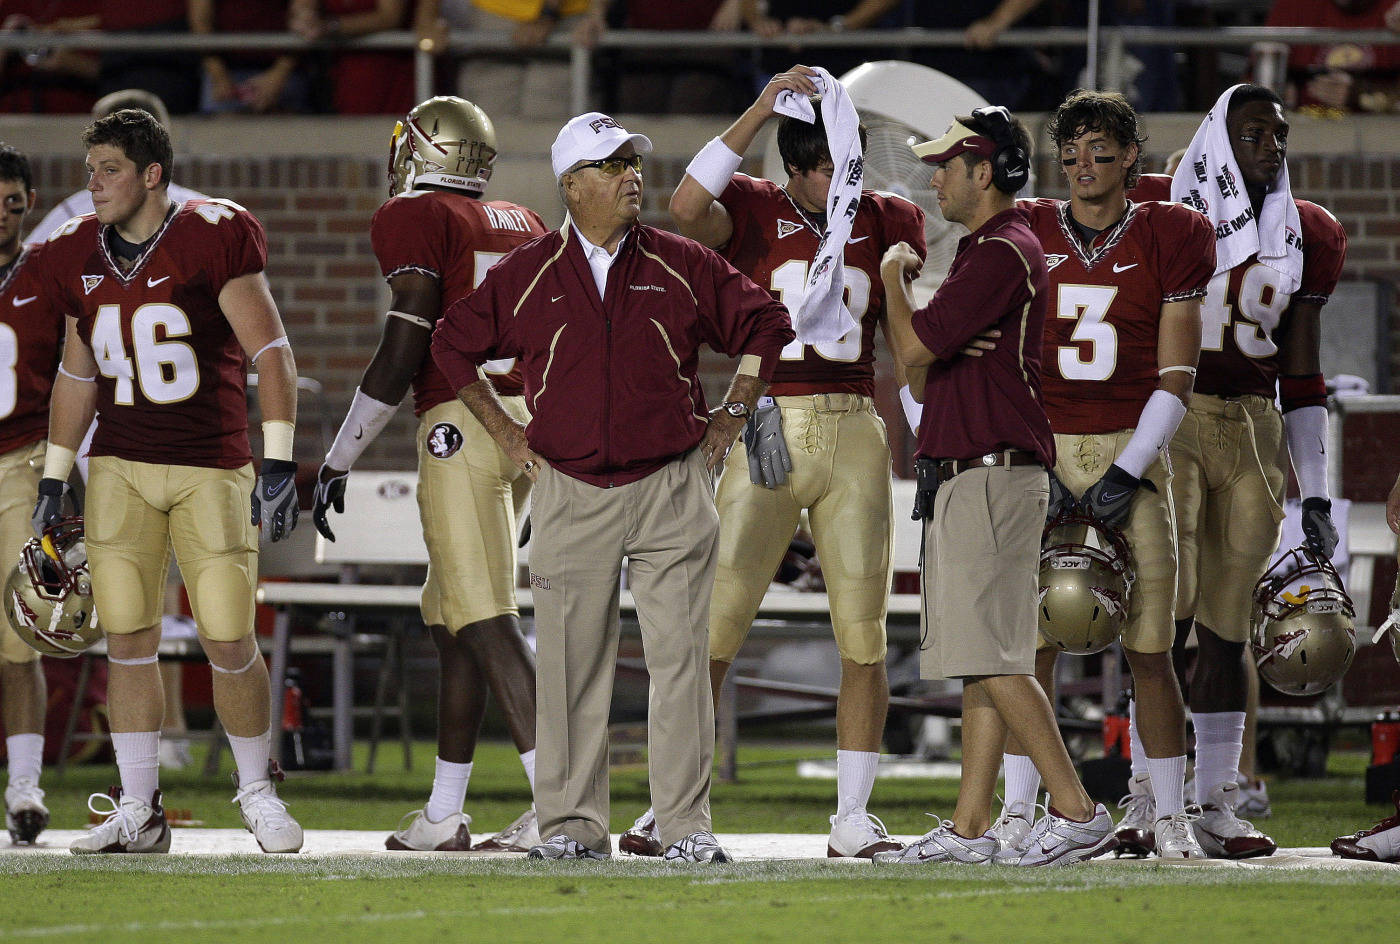 Florida State University head coach Bobby Bowden, center, watches on the sidelines during an NCAA college football game against Georgia Tech, Saturday, Oct. 10, 2009, in Tallahassee, Fla.